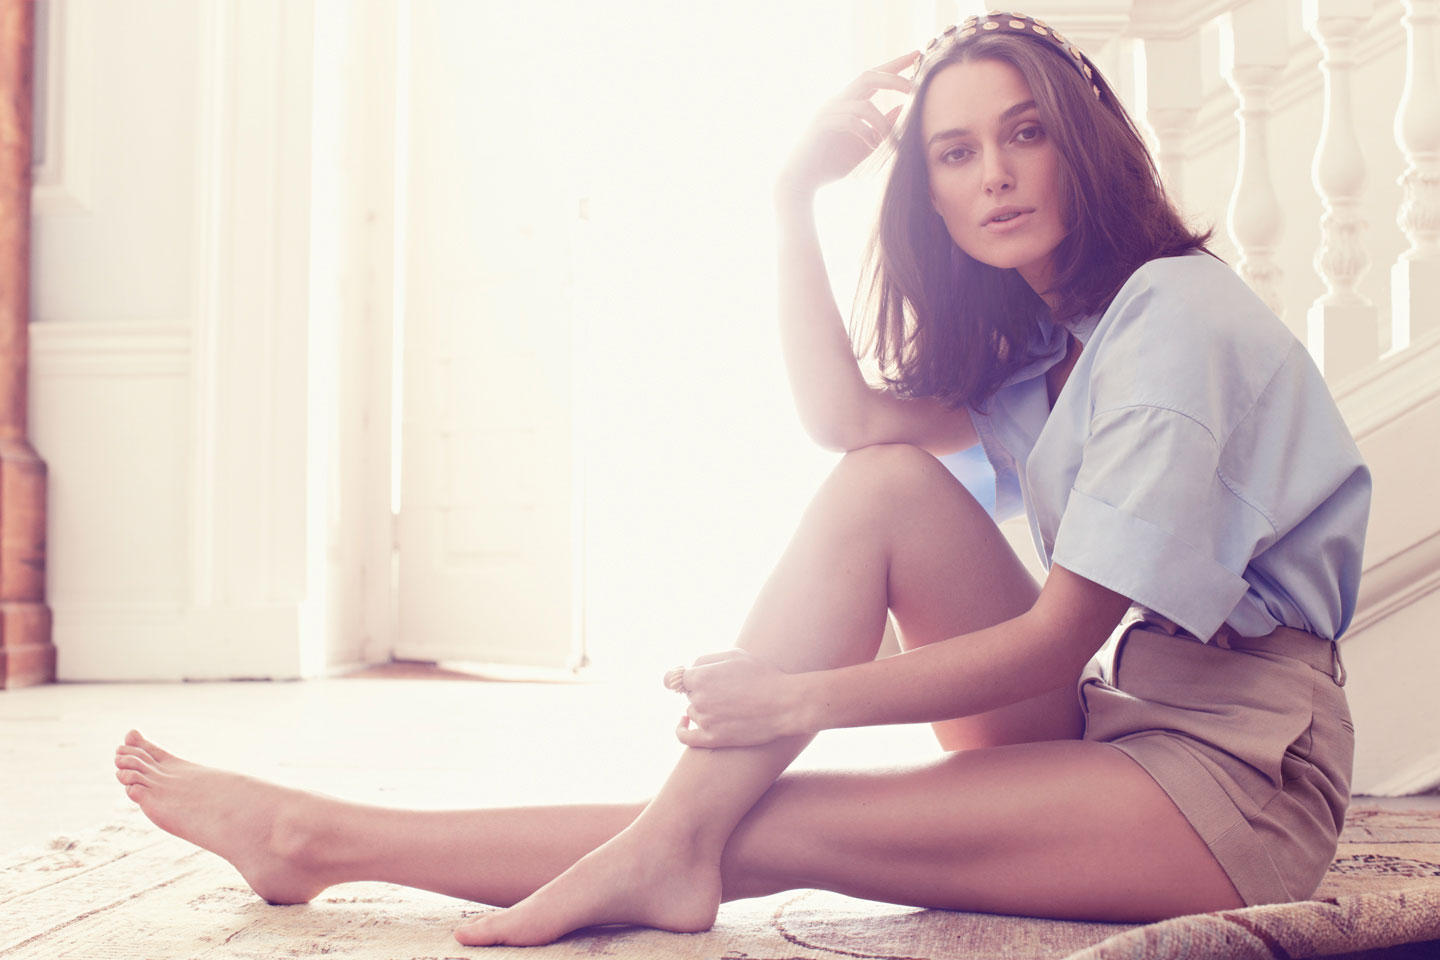 Have Keira knightley toes casually, not